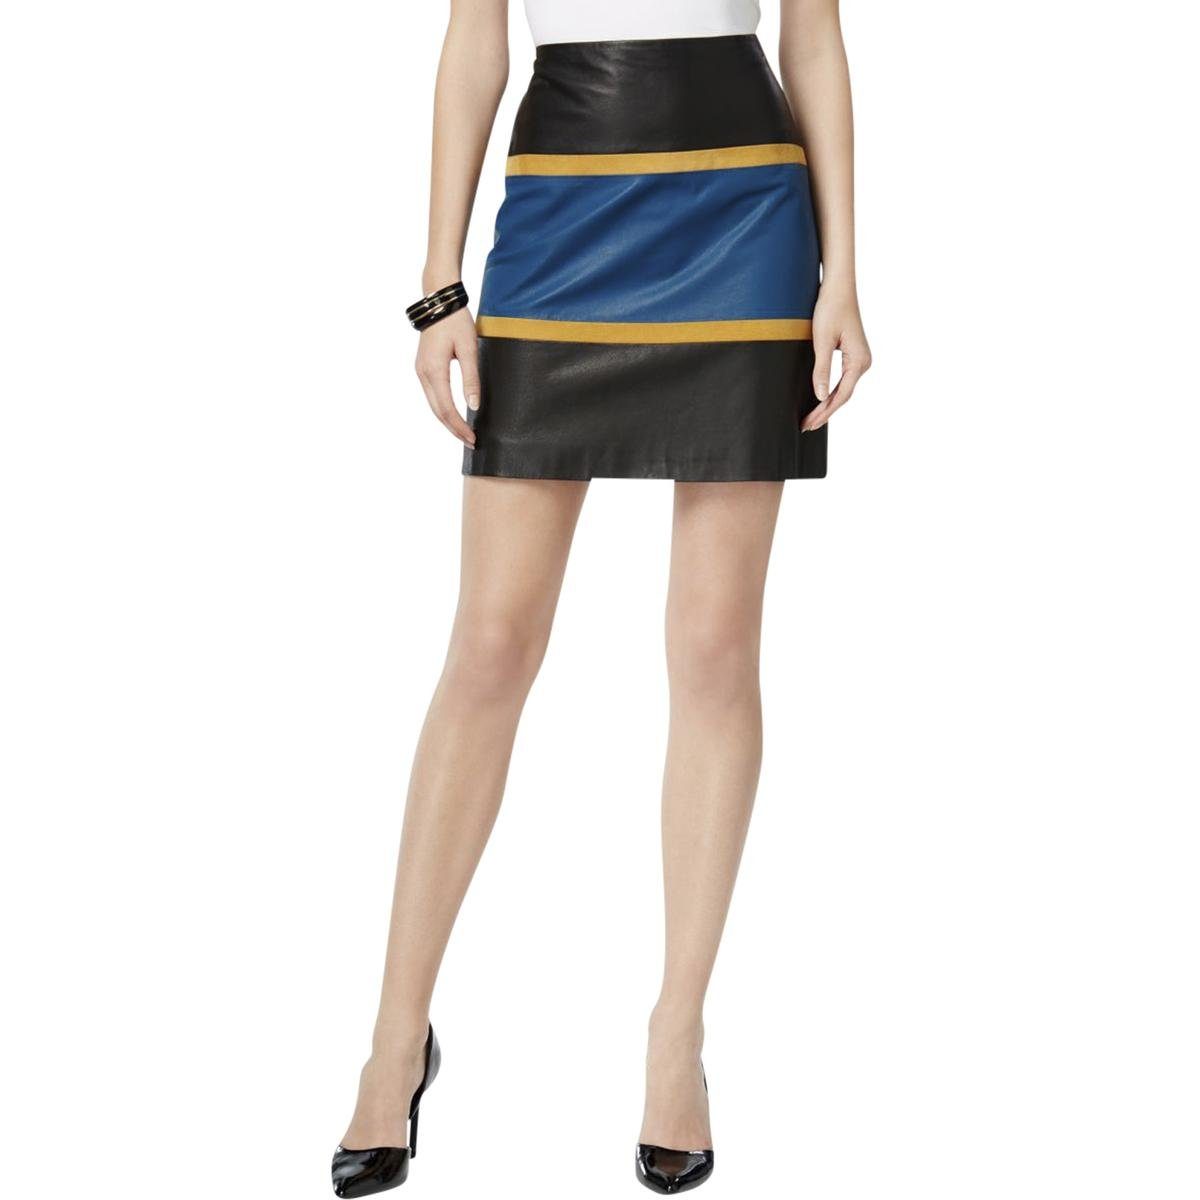 Anne Klein Women's Color Block Leather Skirt, Juniper Combo, 14